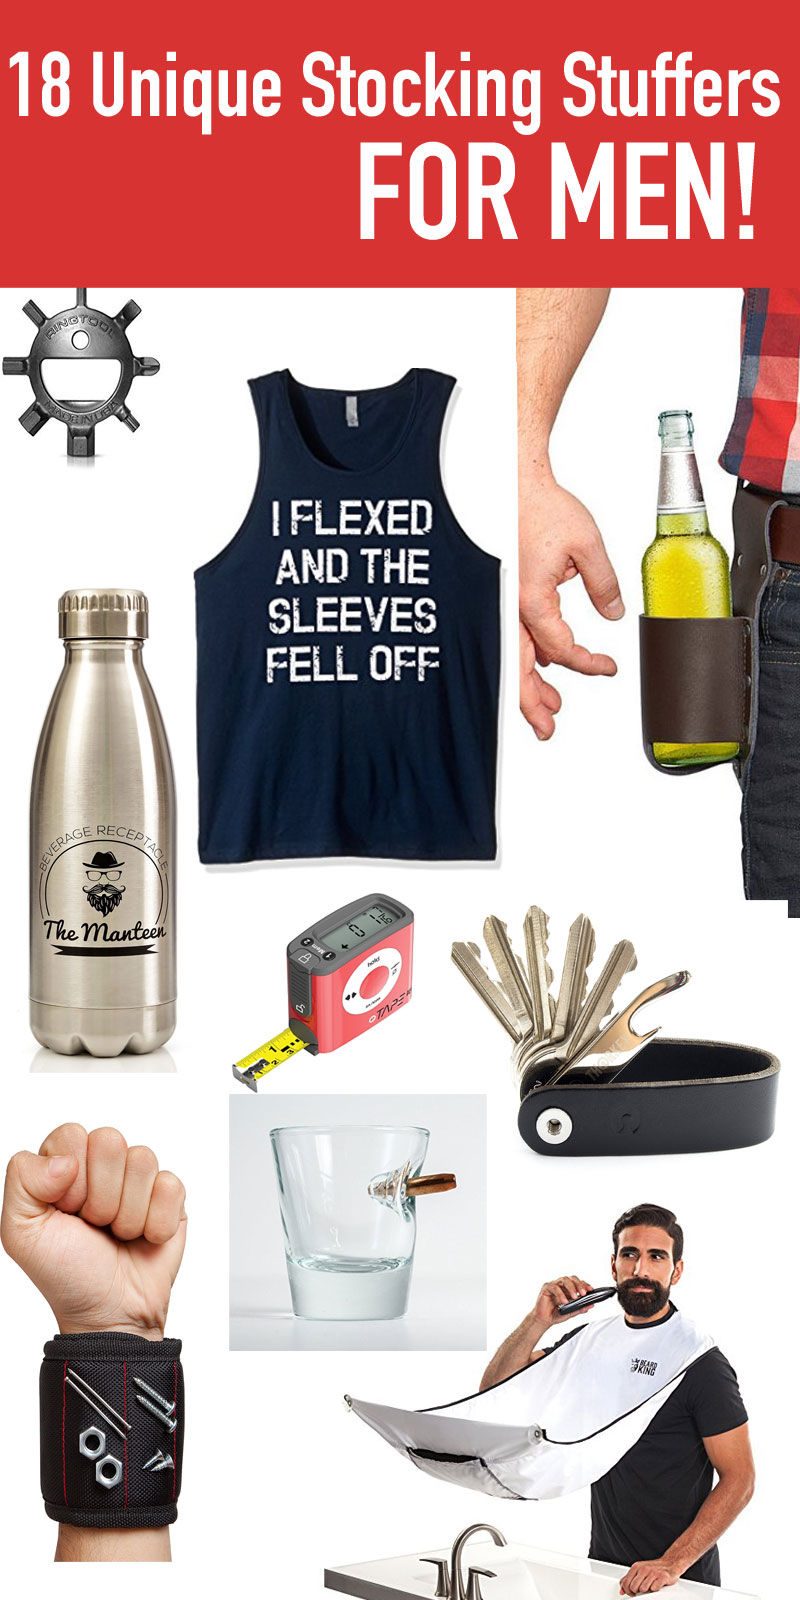 45 Fun Stocking Stuffers Under $ 30 Funny Gag Gift Ideas That Are Just Too Perfect 40 Most Fun Secret Santa Gifts Under $25 Great Christmas Gifts for Men;.